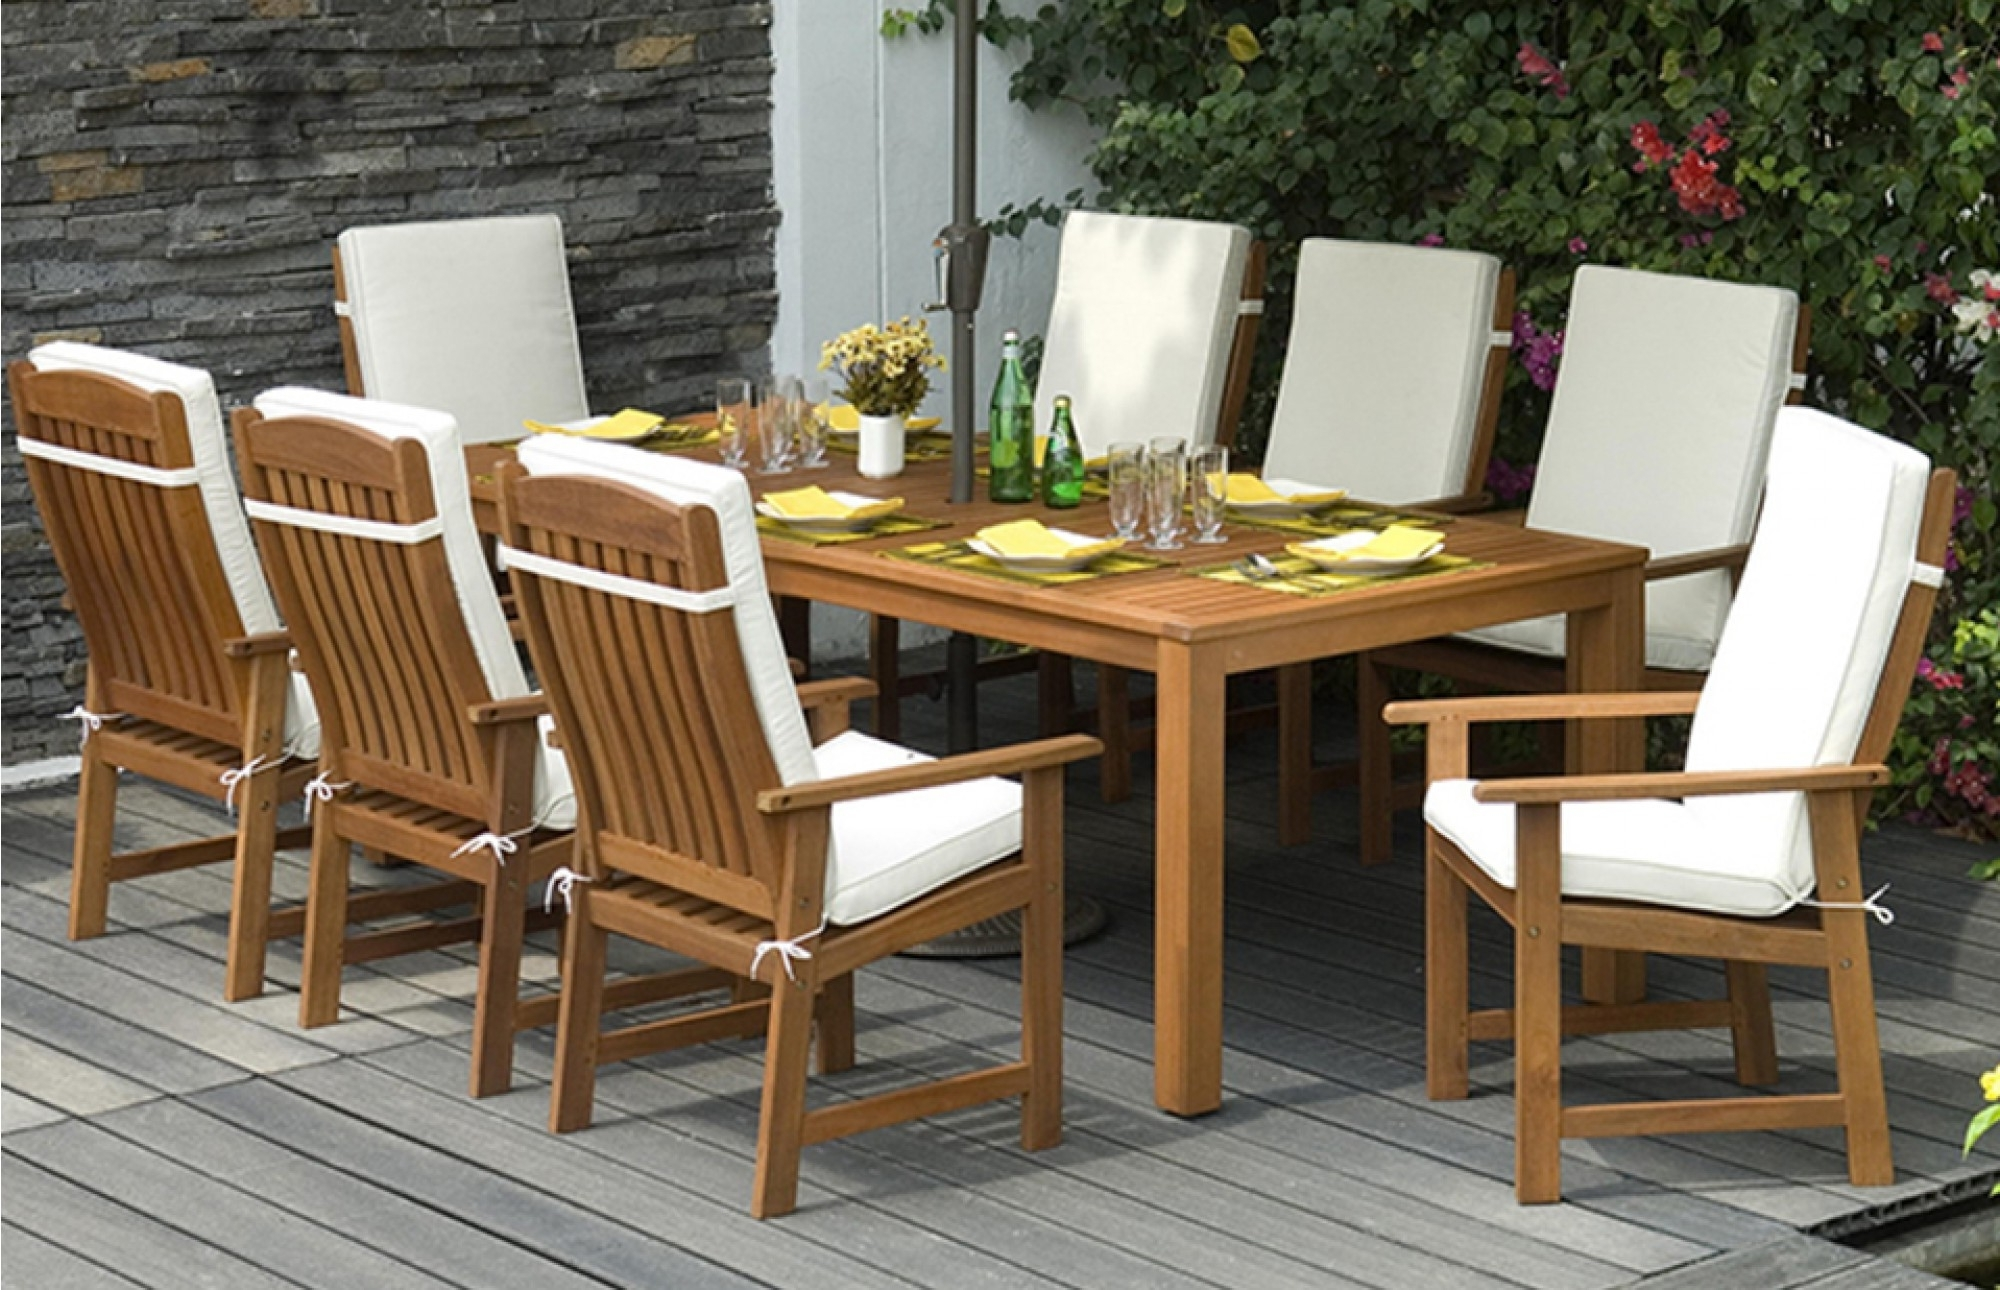 Garden Dining Tables pertaining to Most Recent Patio: Marvellous Wooden Patio Set Outdoor Furniture Wood Types